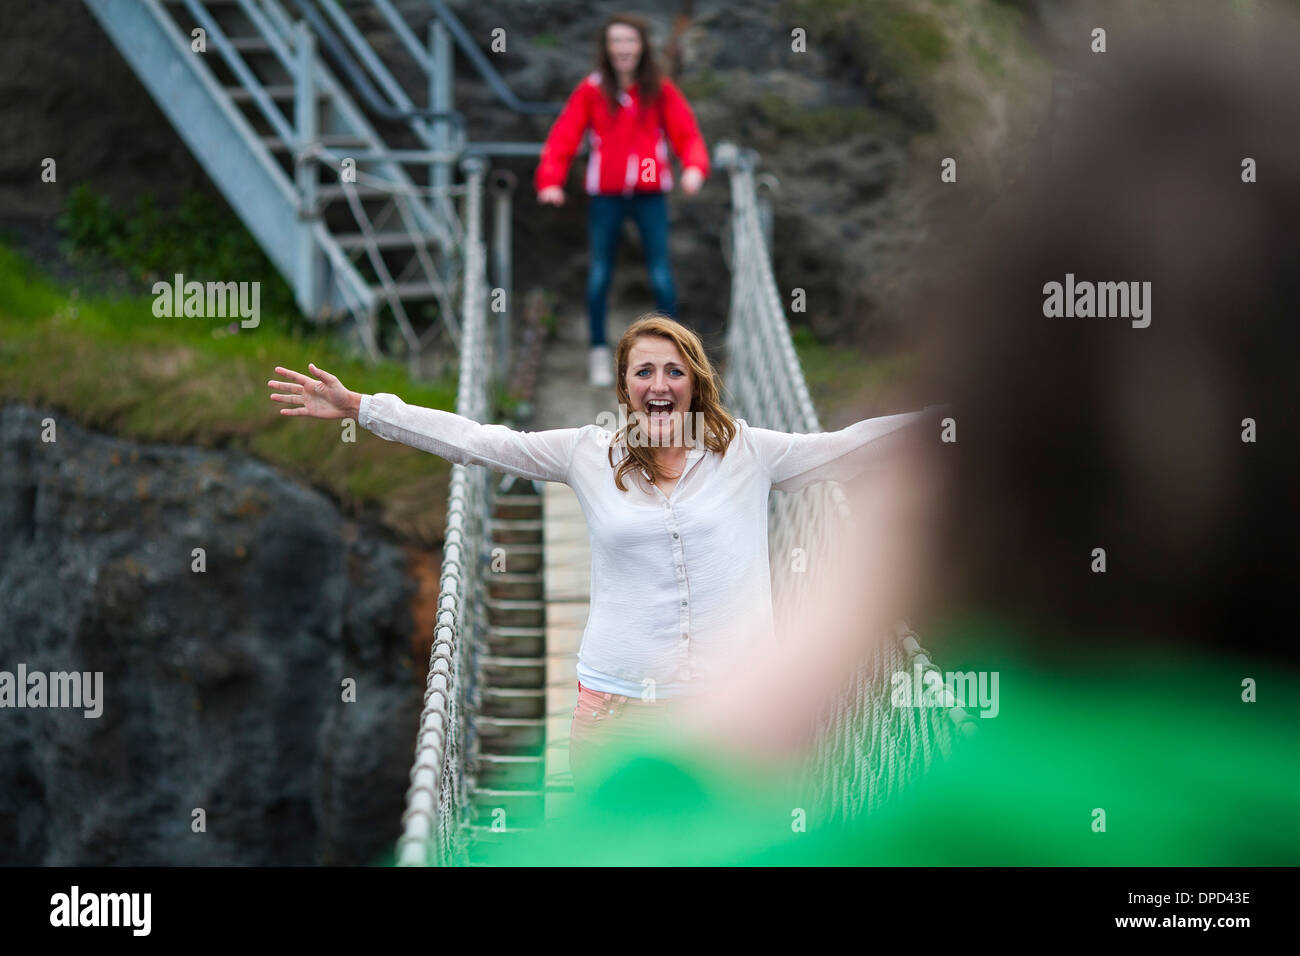 A happy and smiling visitor poses half way across the Carrick-a-Rede rope bridge on the Antrim coast of Northern Ireland. - Stock Image